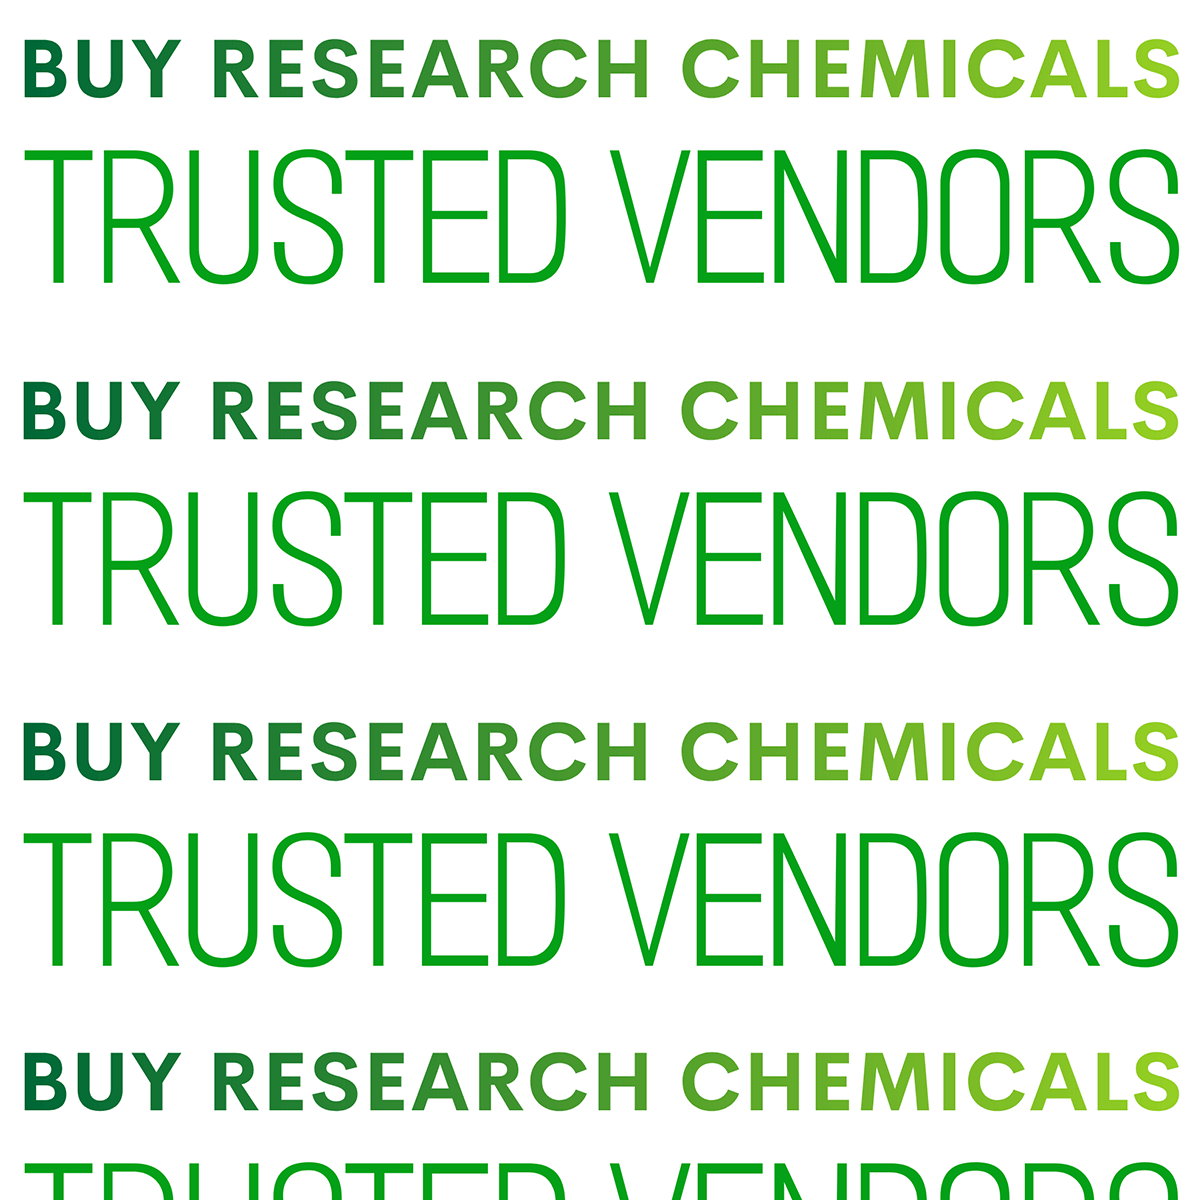 Buy Research Chemicals Online - Trusted Vendors